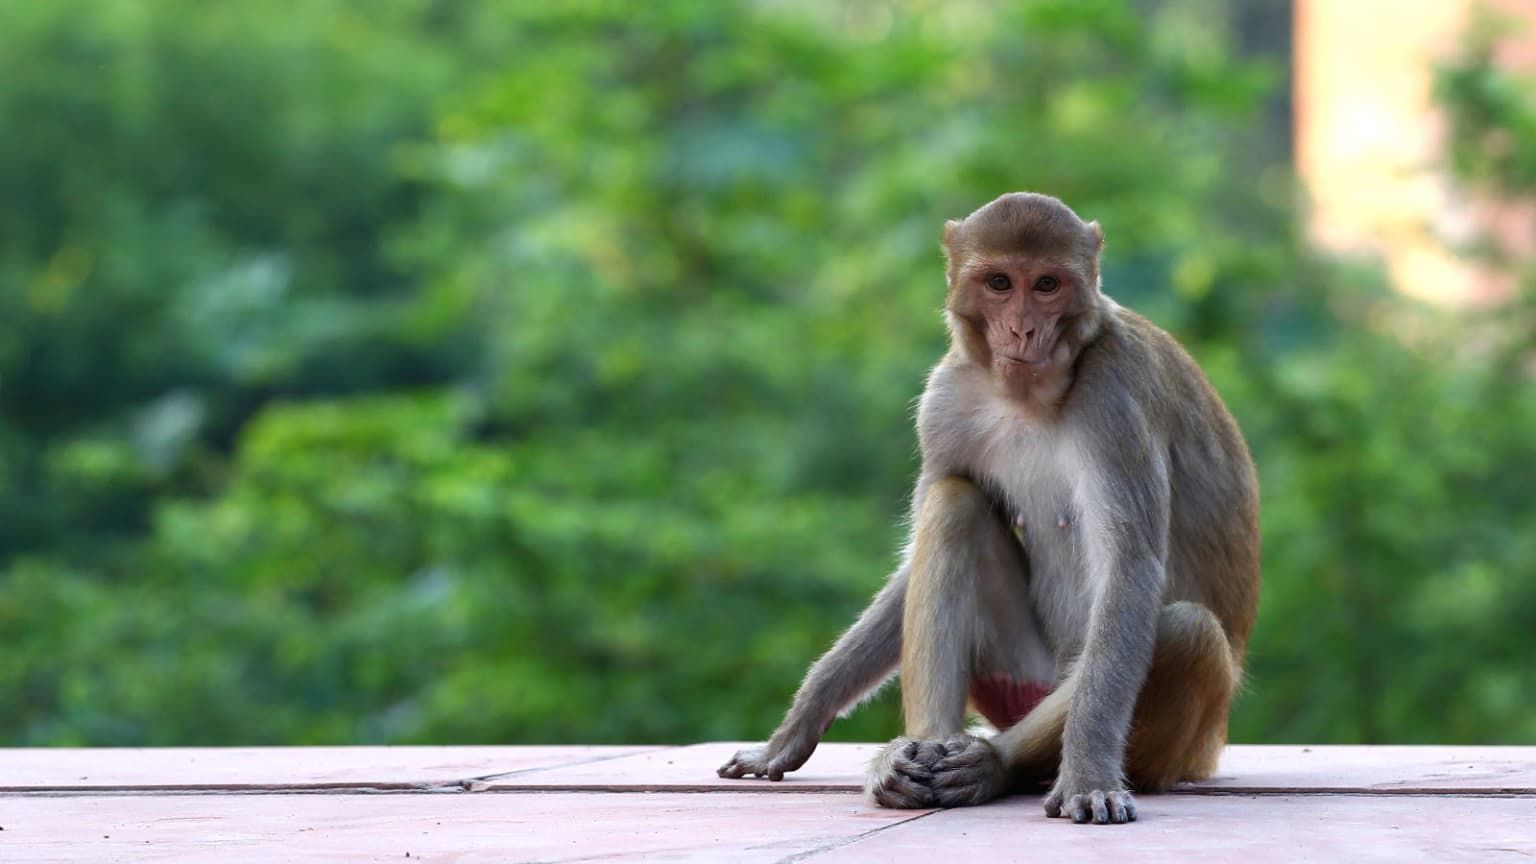 India's Monkeys Keep Killing People, so Scientists Are Trying Radical New Sterilization Strategies